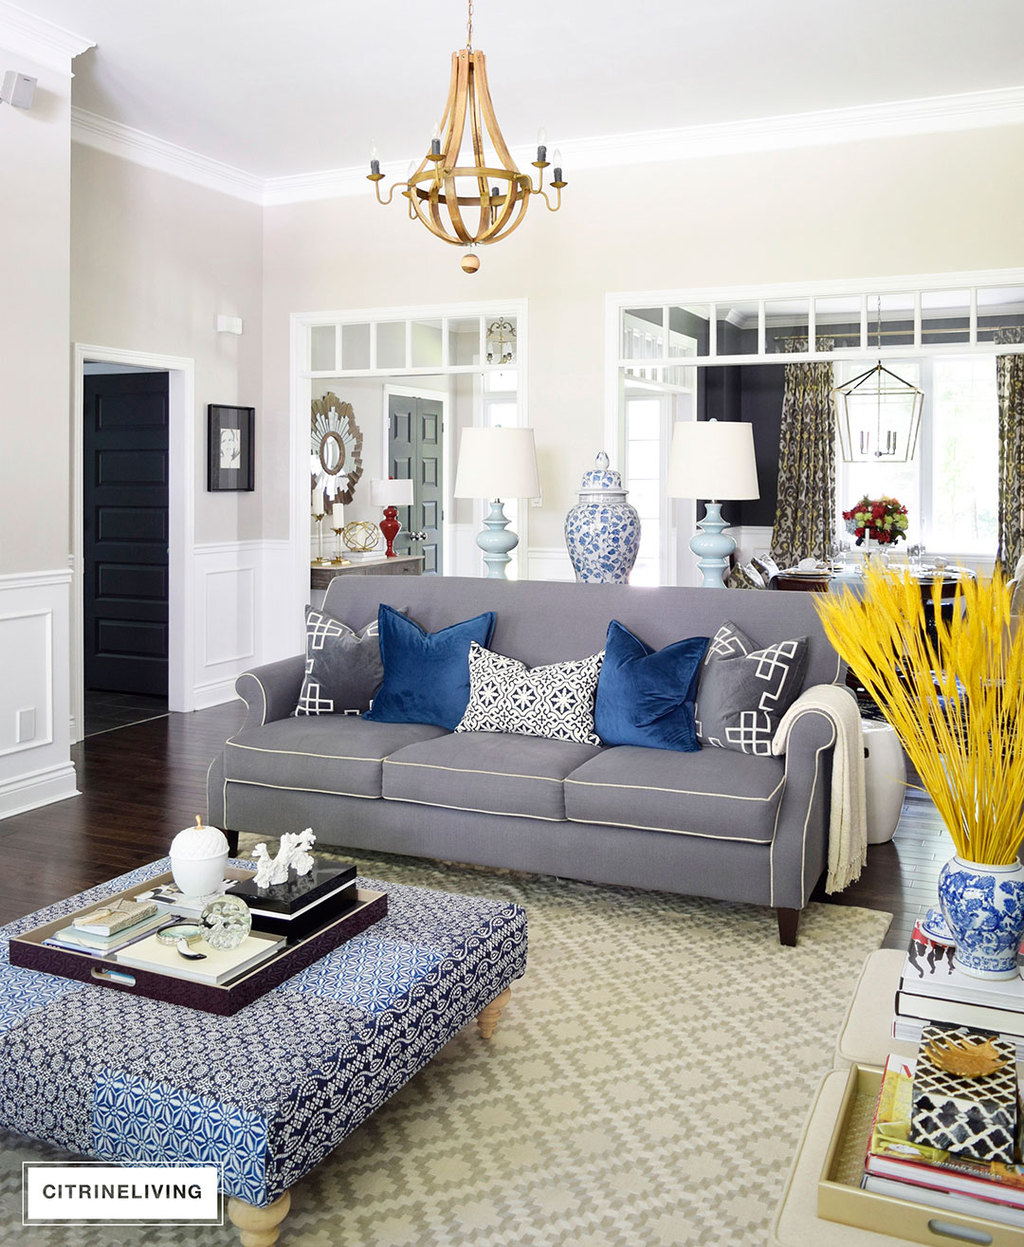 Fall decorated living room featuring rich blue velvet and gold, and blue and white accents